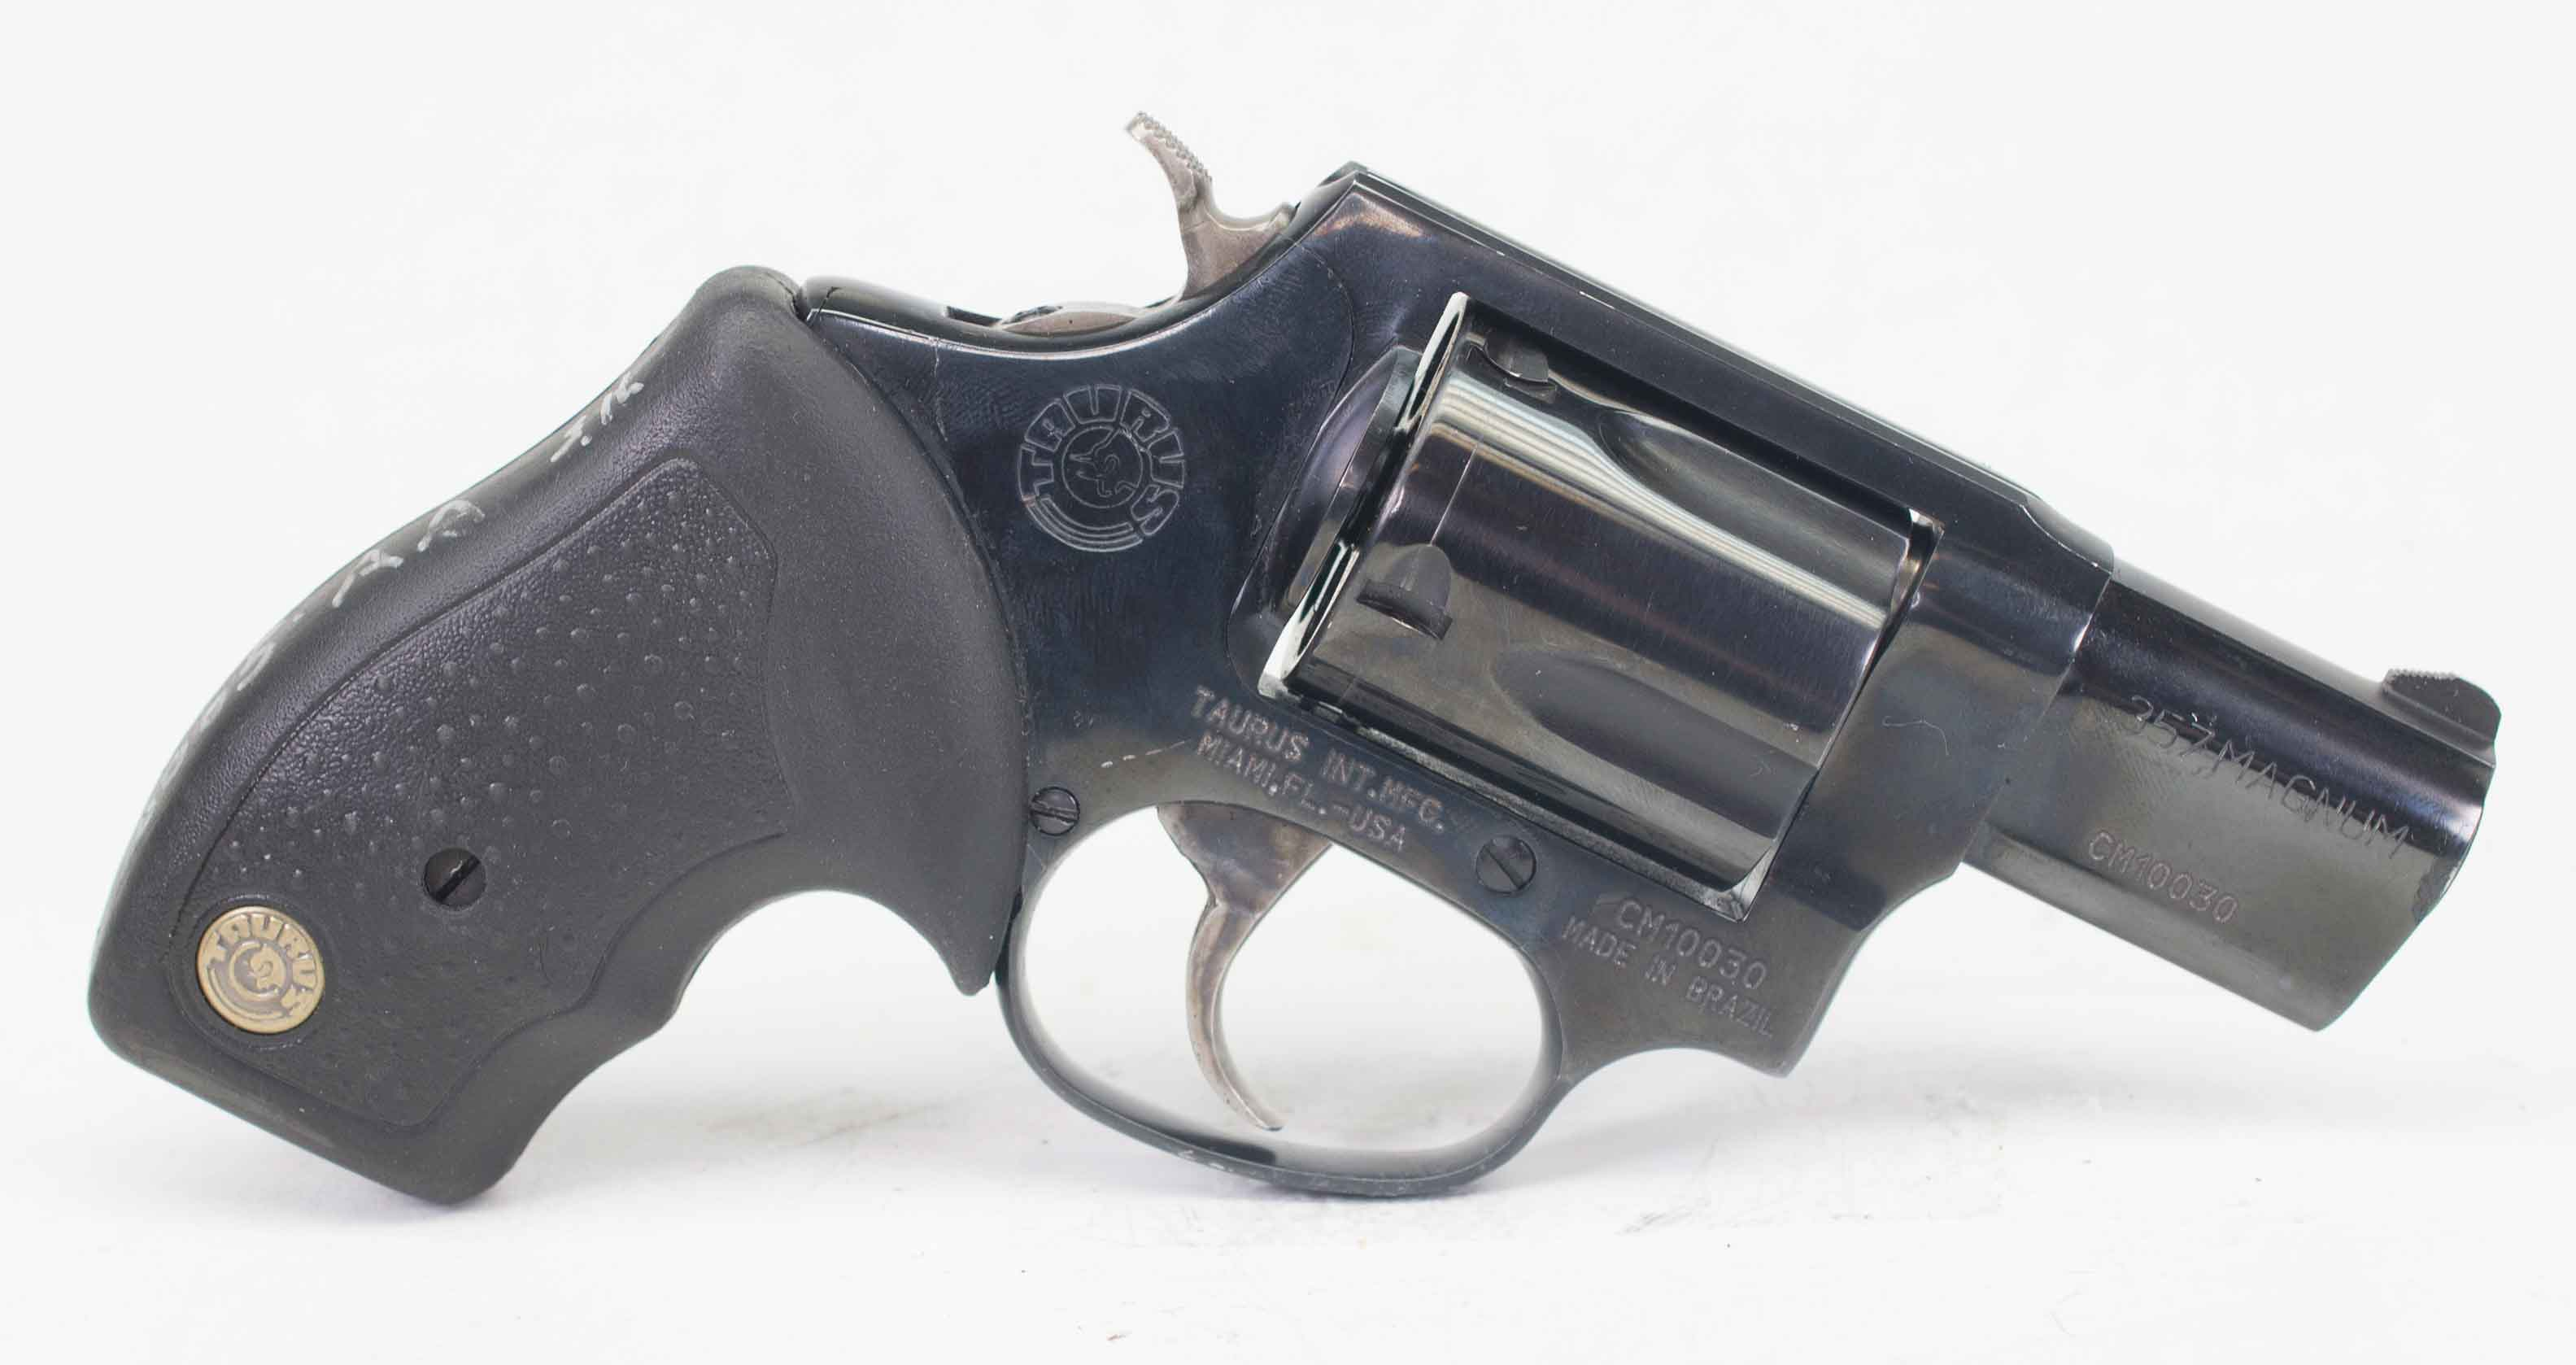 TAURUS 605 (Auction ID: 10887716, End Time : Mar  11